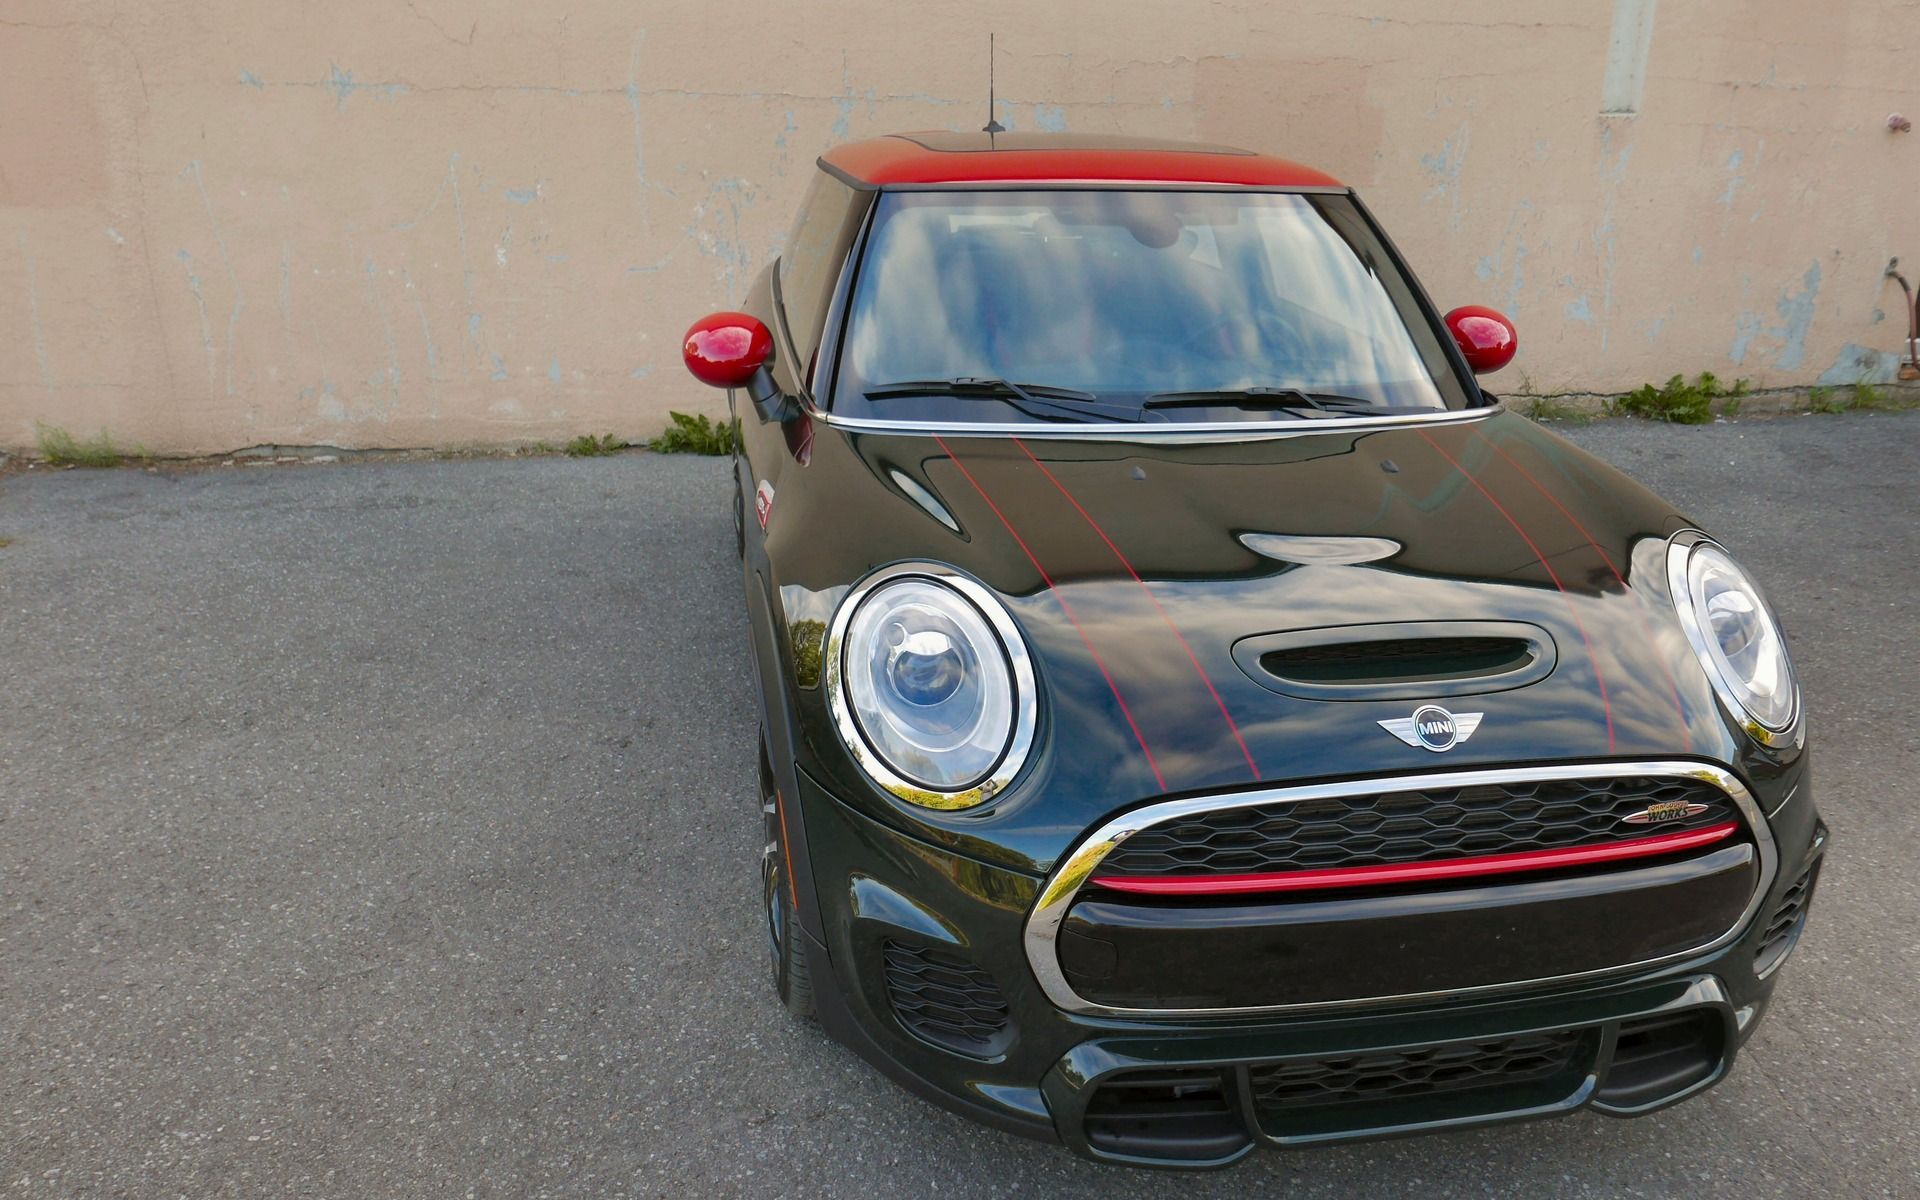 The car's wider track further accentuates the Cooper's bulldog stance.